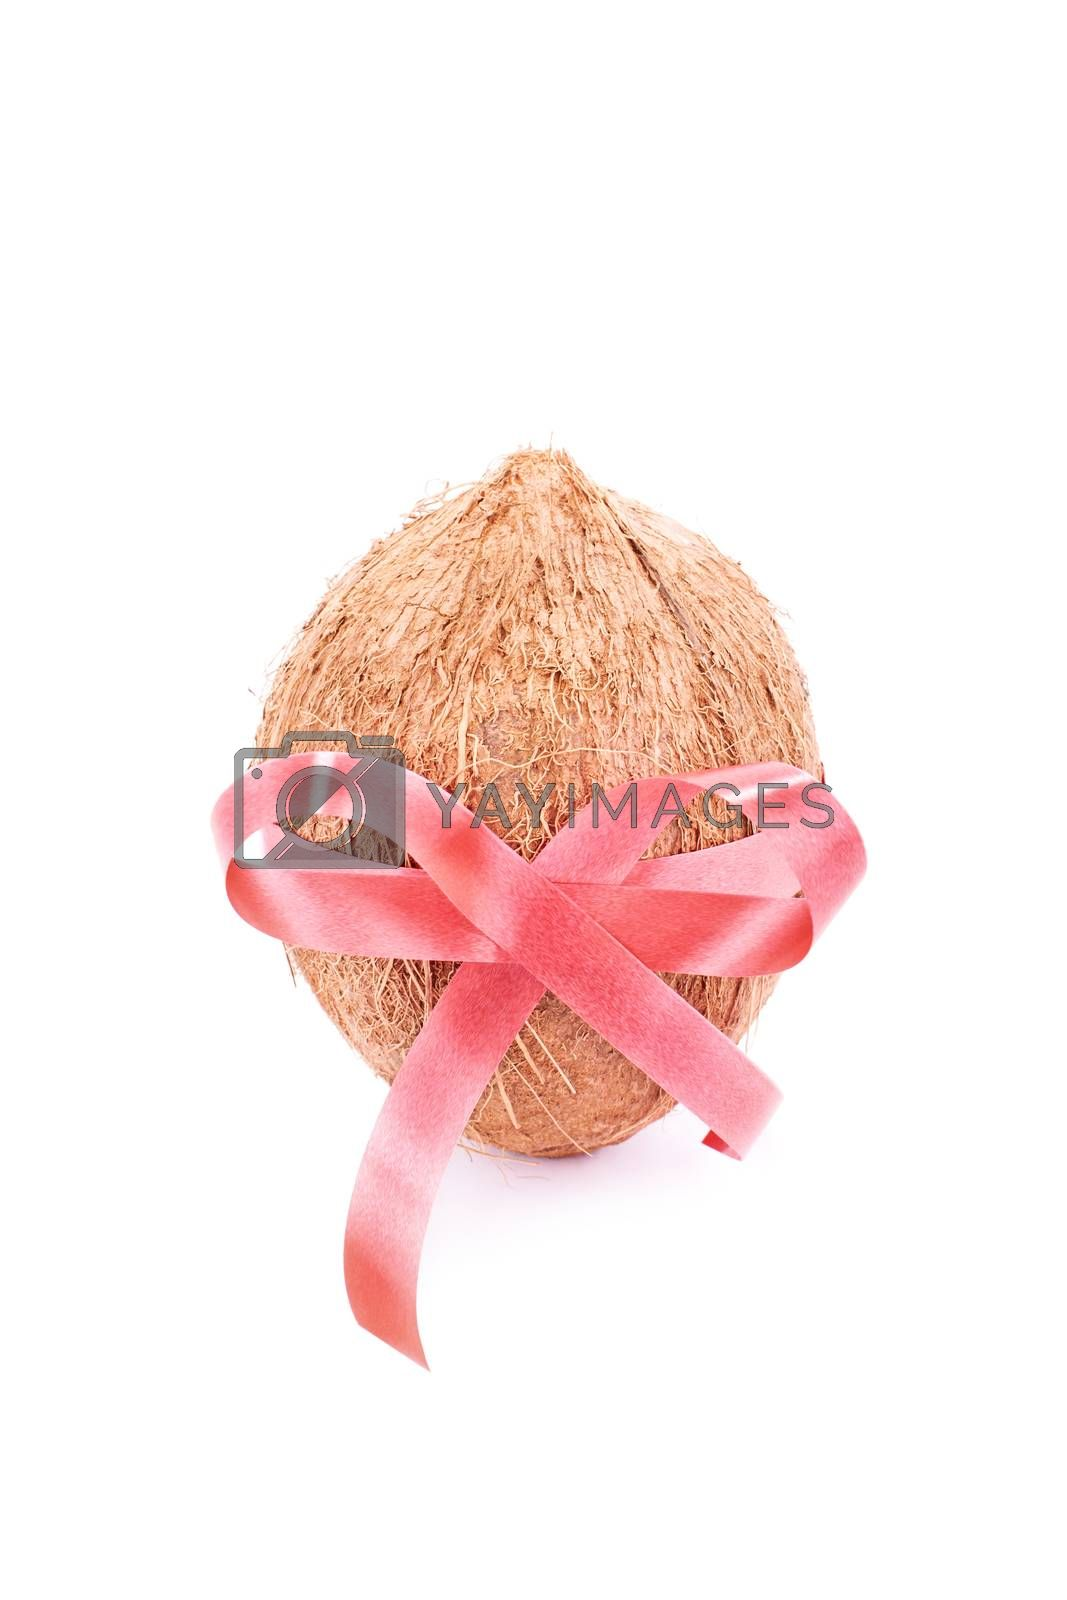 Coconut wrapped with red ribbon, isolated on white background.